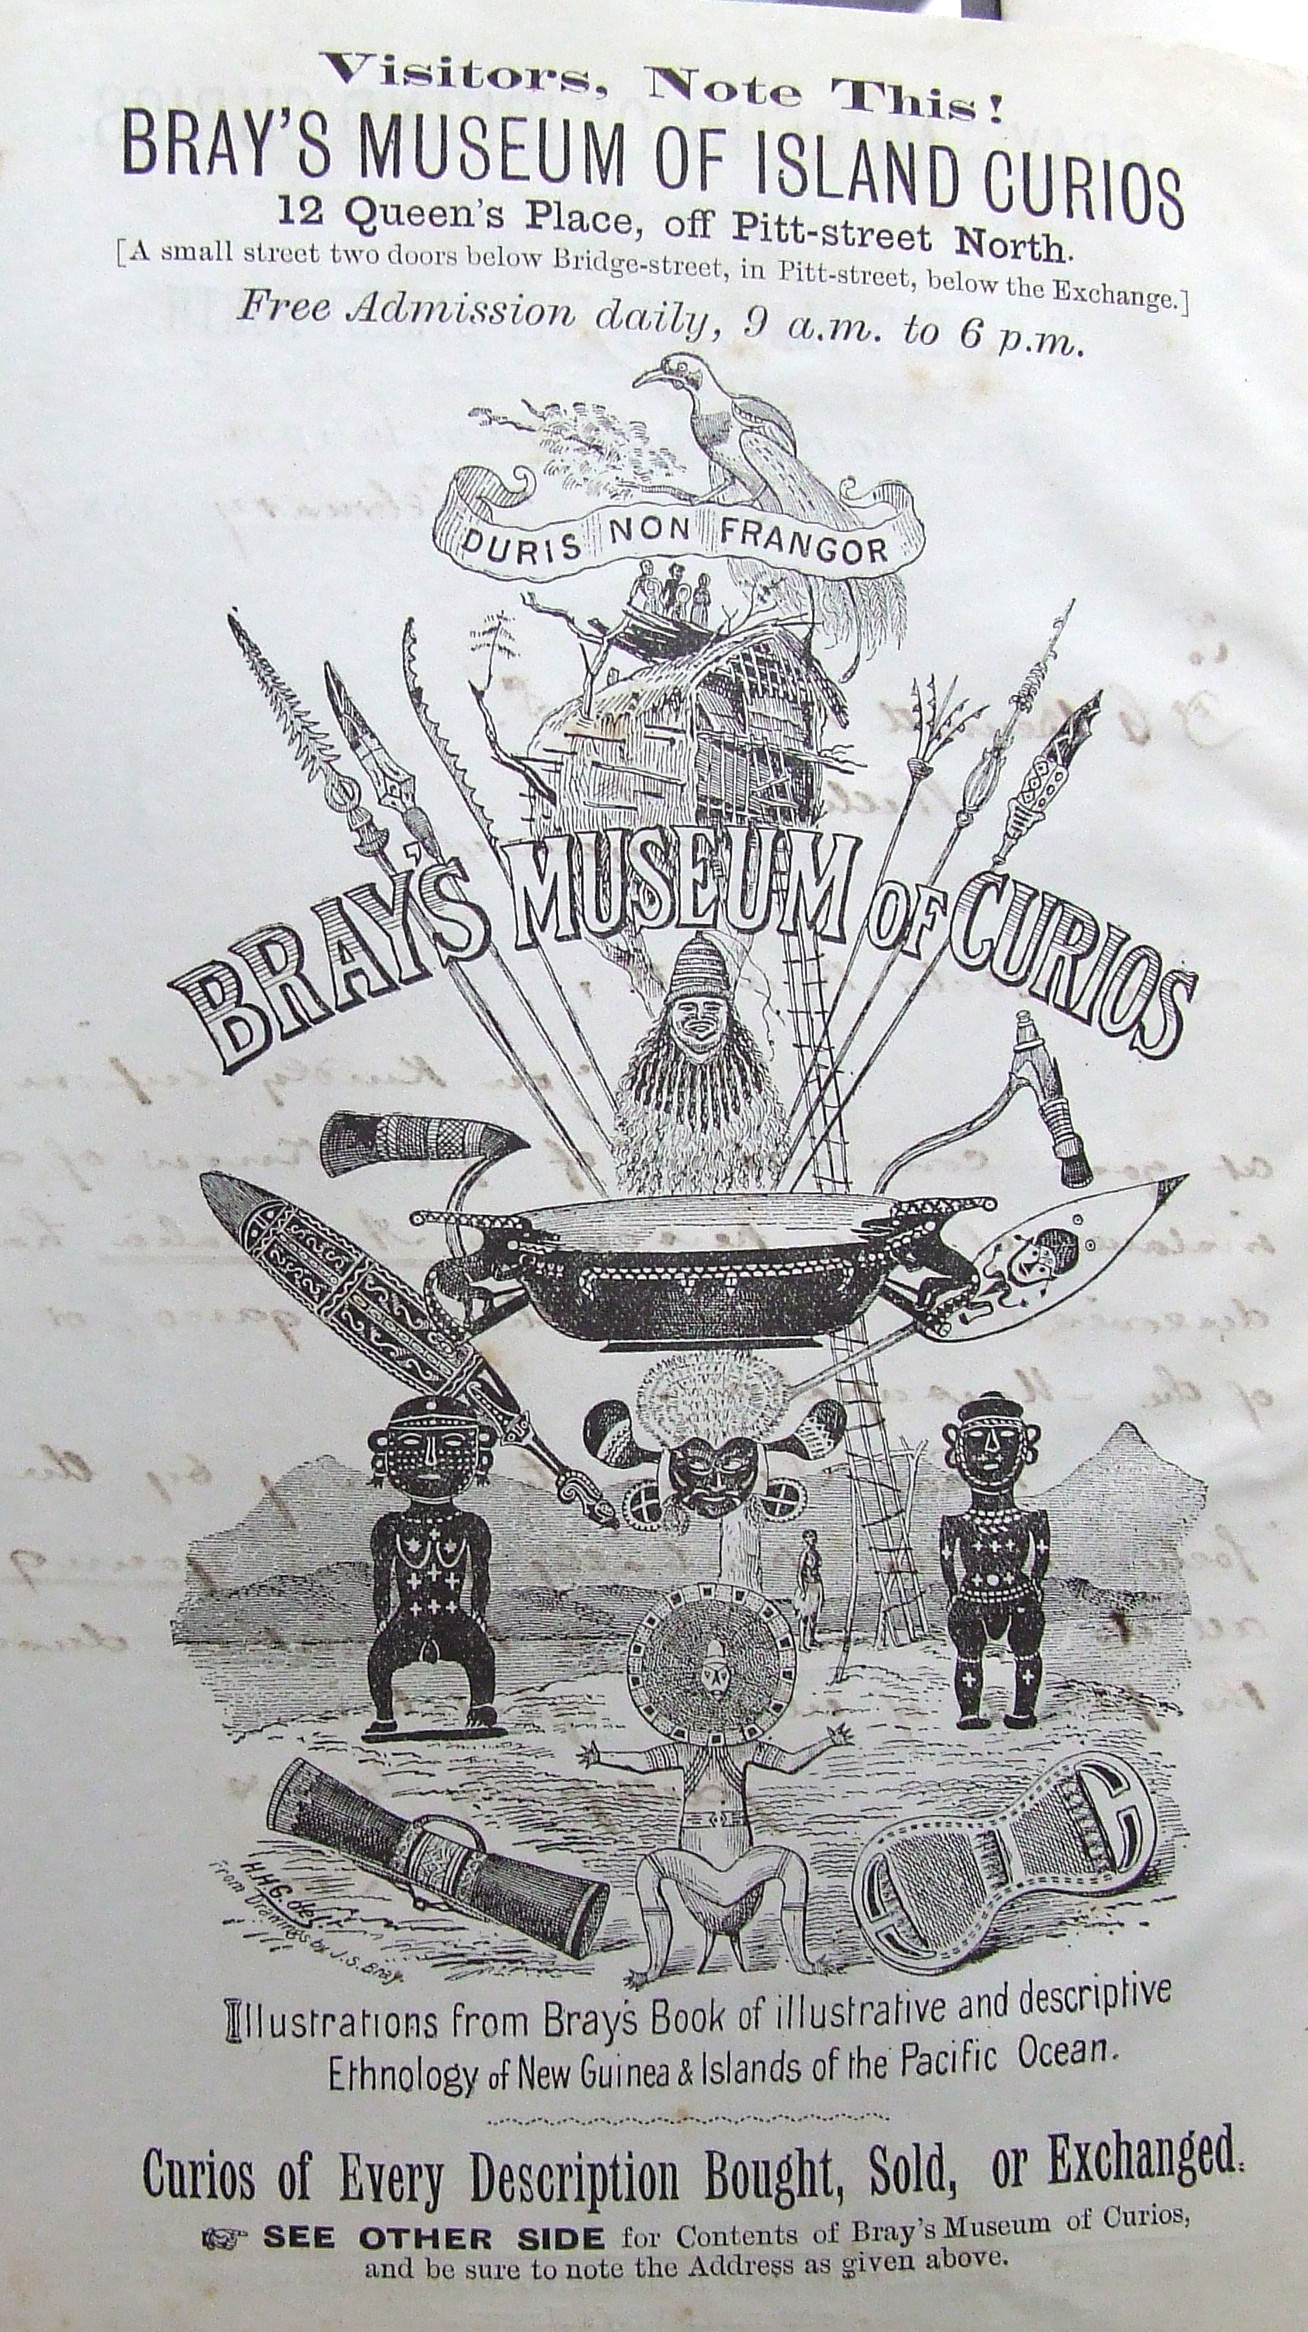 1880s advertisement for Bray's Museum of Curios in Sydney, illustrating numerous Pacific Island artefacts.